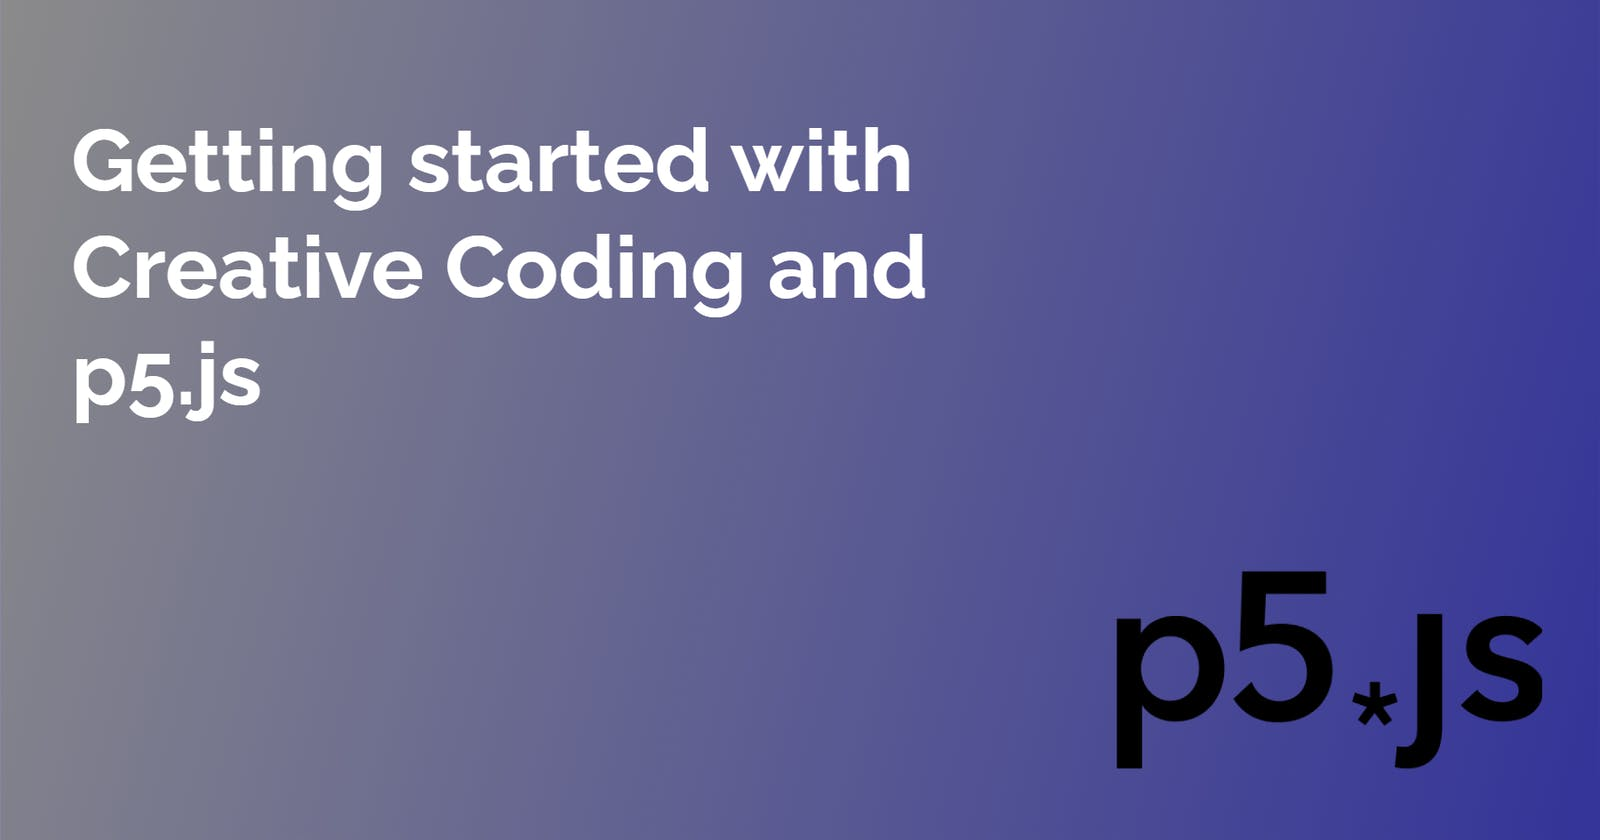 Getting started with Creative Coding and p5.js